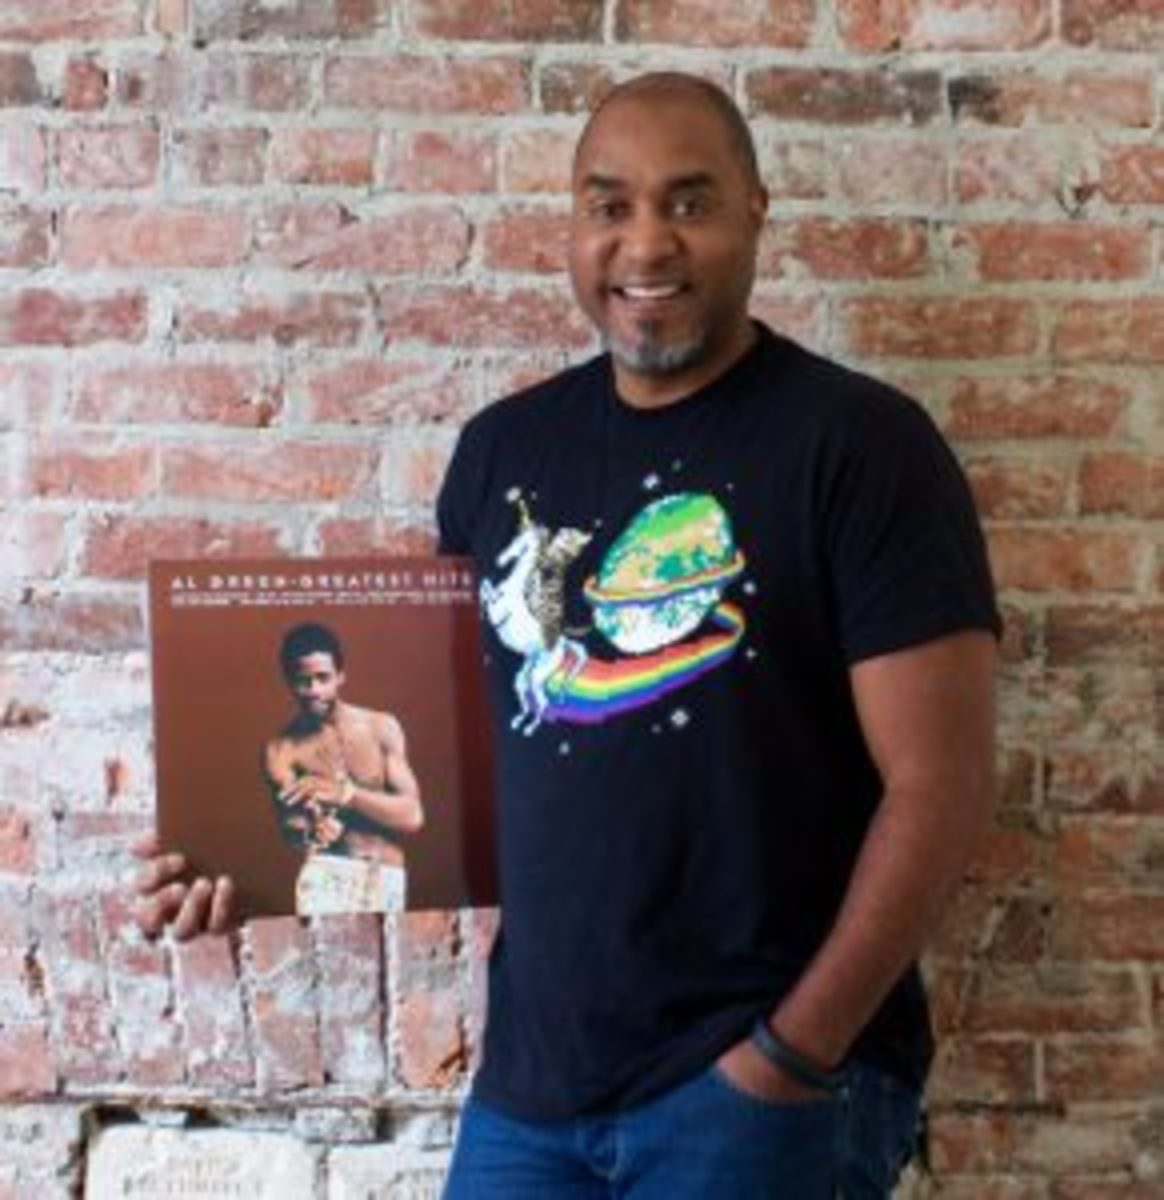 ReplyYes CEO Dave Cotter with a favorite album.